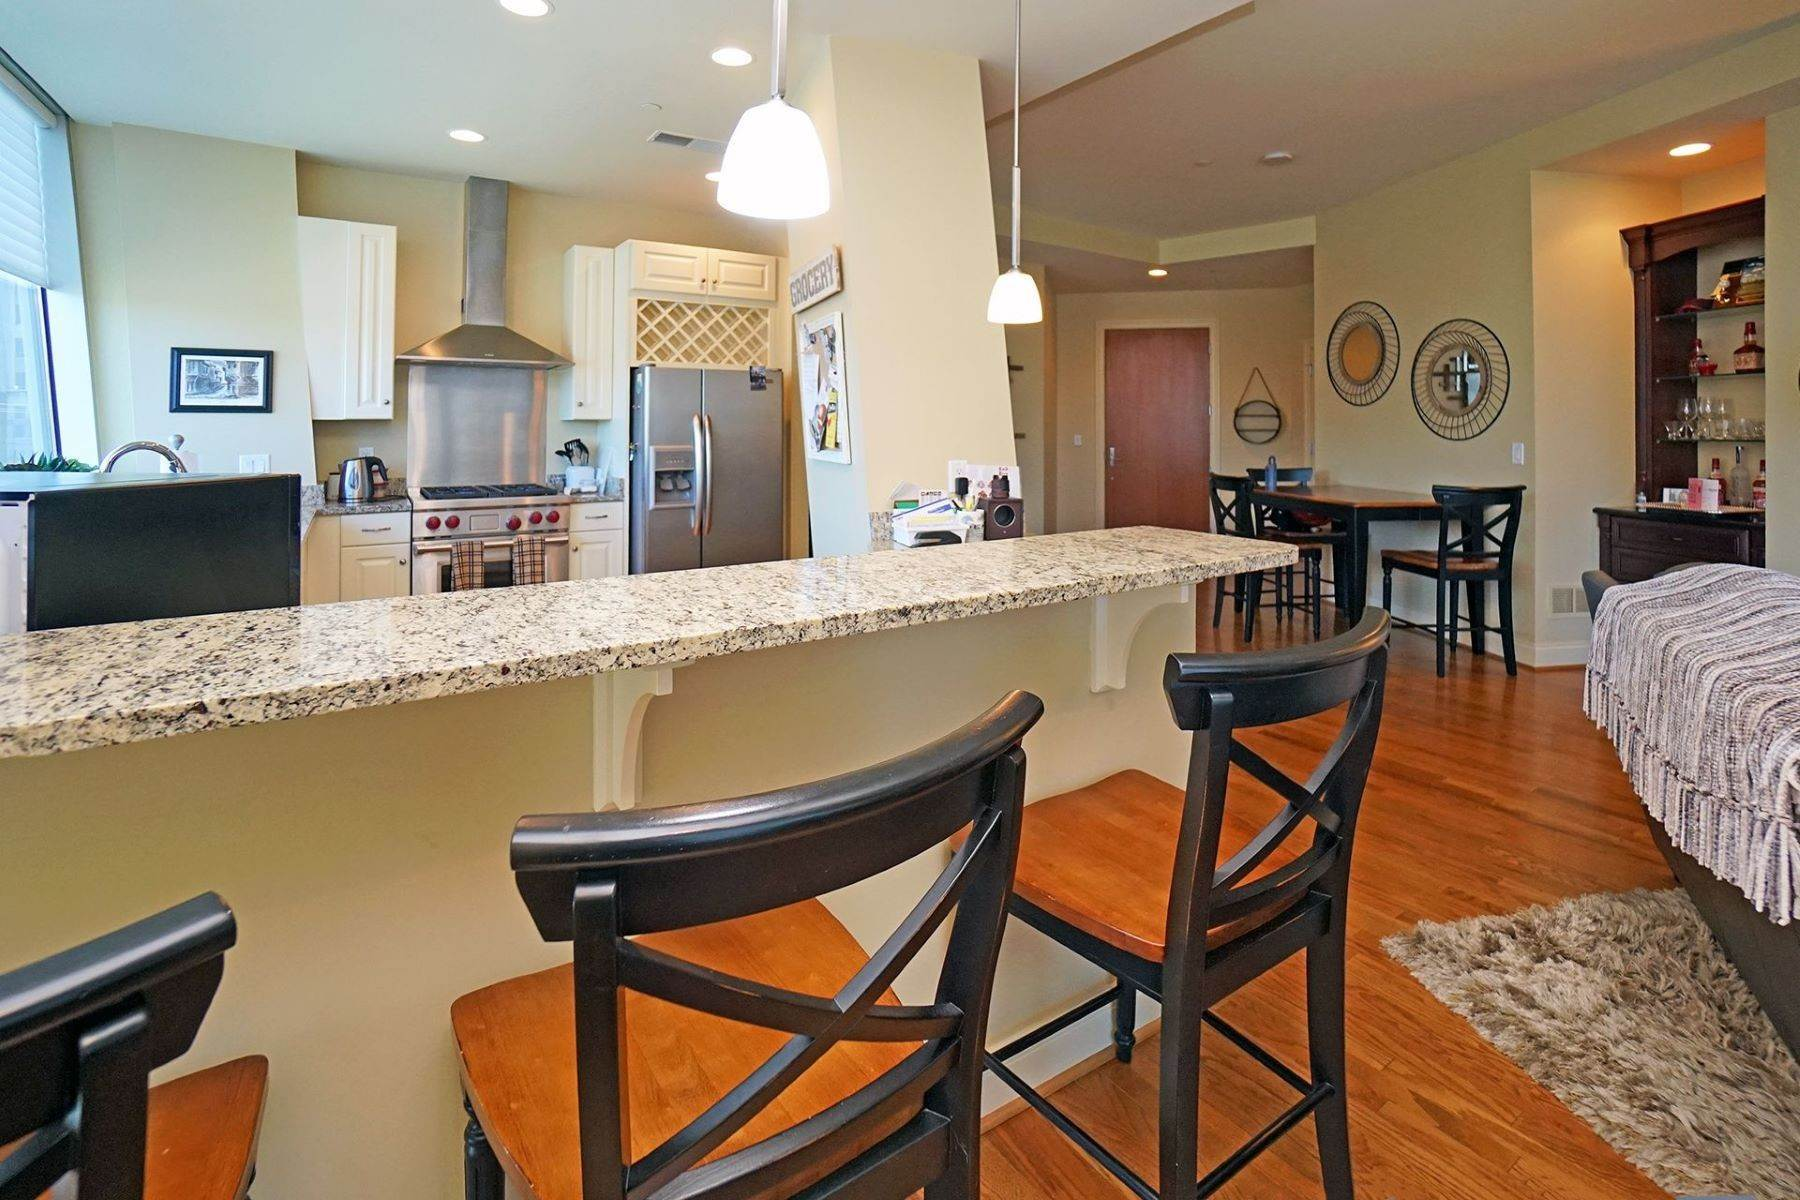 12. Condominiums for Sale at 1 Roebling, Covington, Ky, 41011 1 Roebling, Unit# 306 Covington, Kentucky 41011 United States